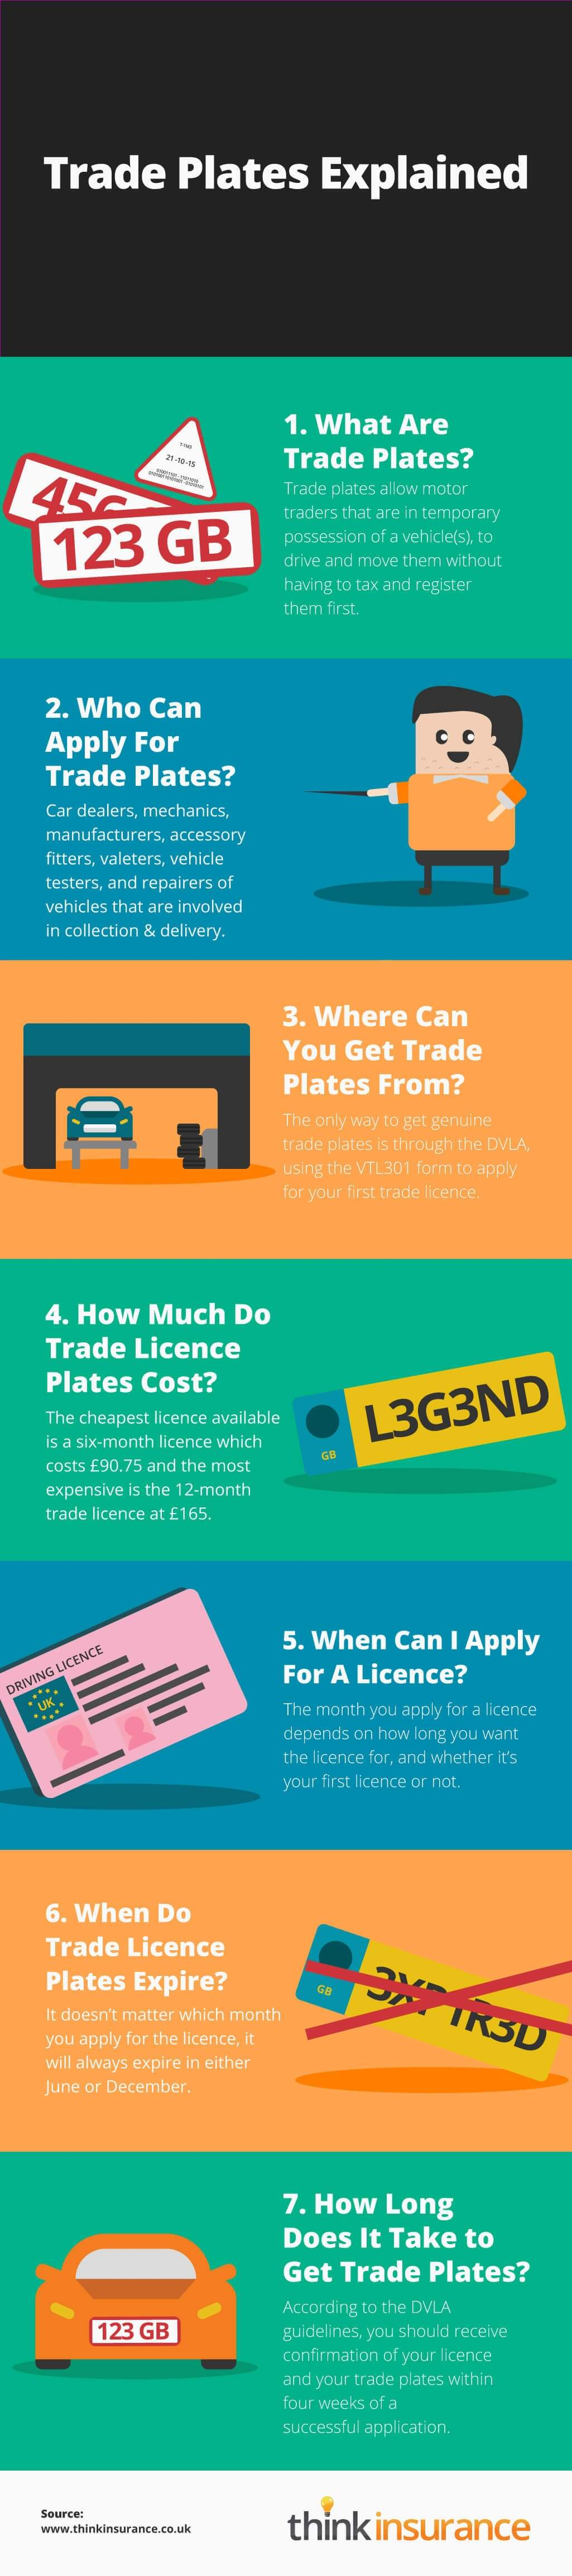 motor trade plates explained infographic